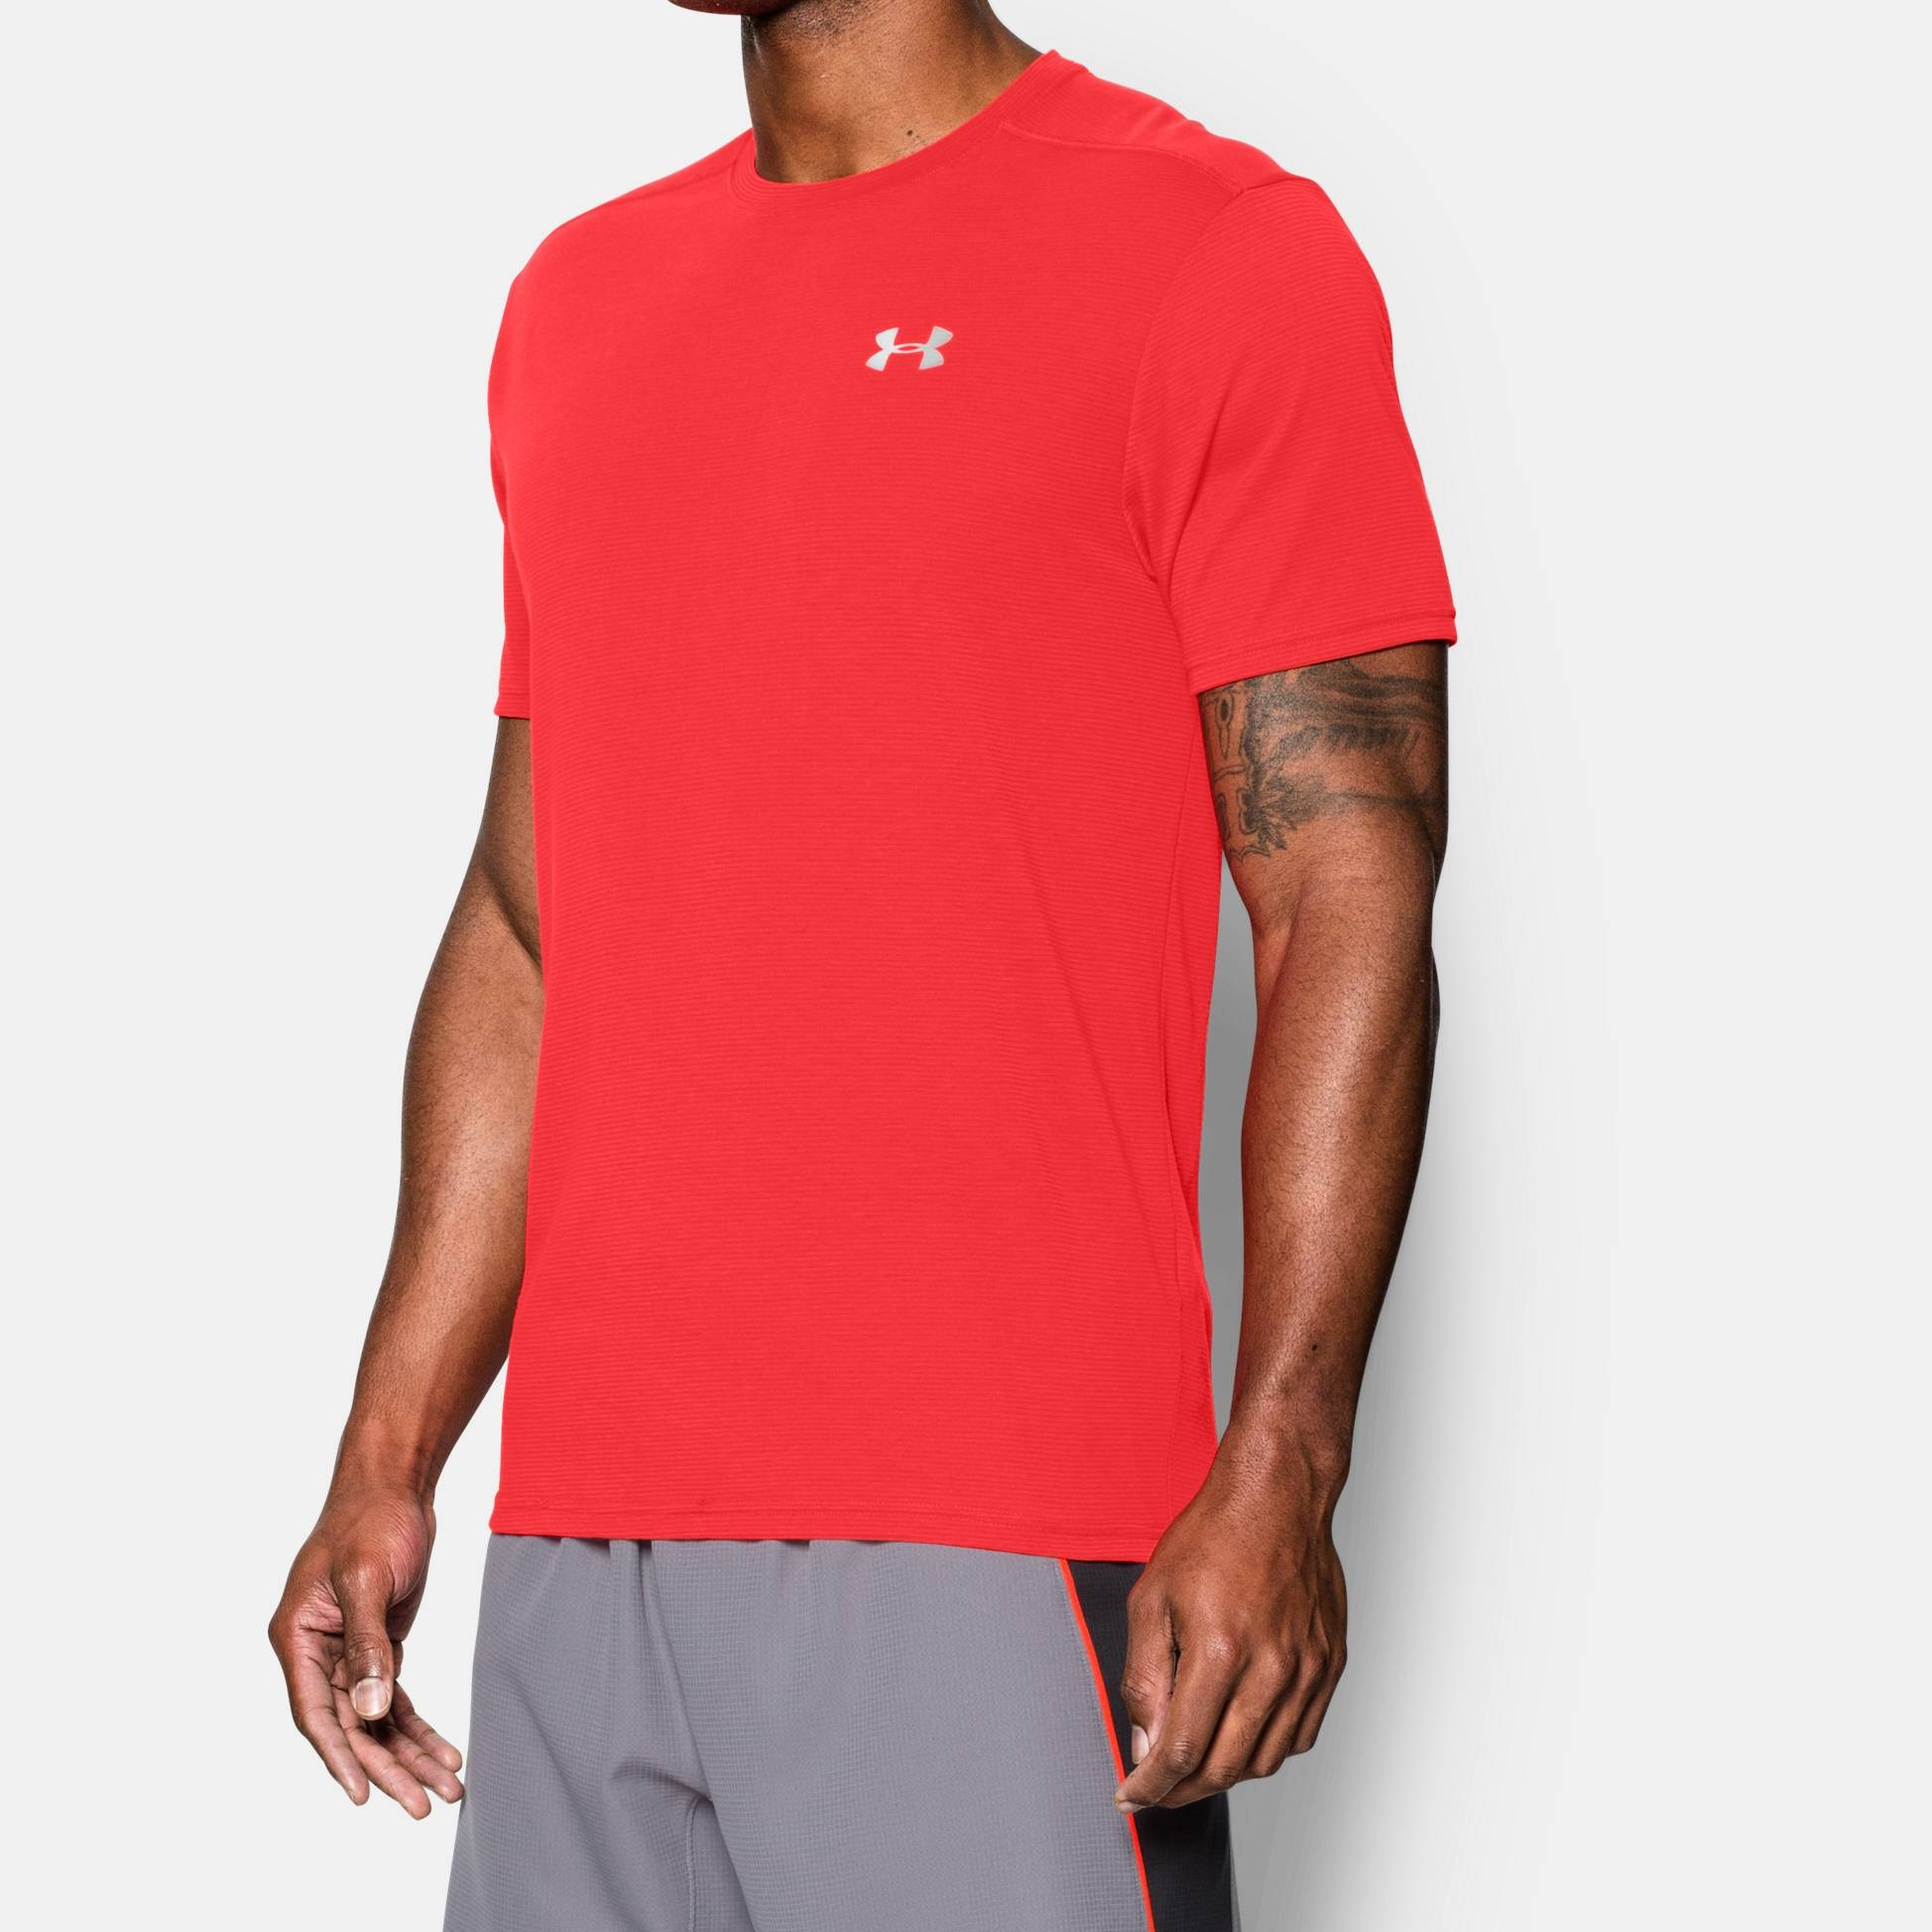 b88f760bee9 under armour run t shirt cheap > OFF70% The Largest Catalog Discounts